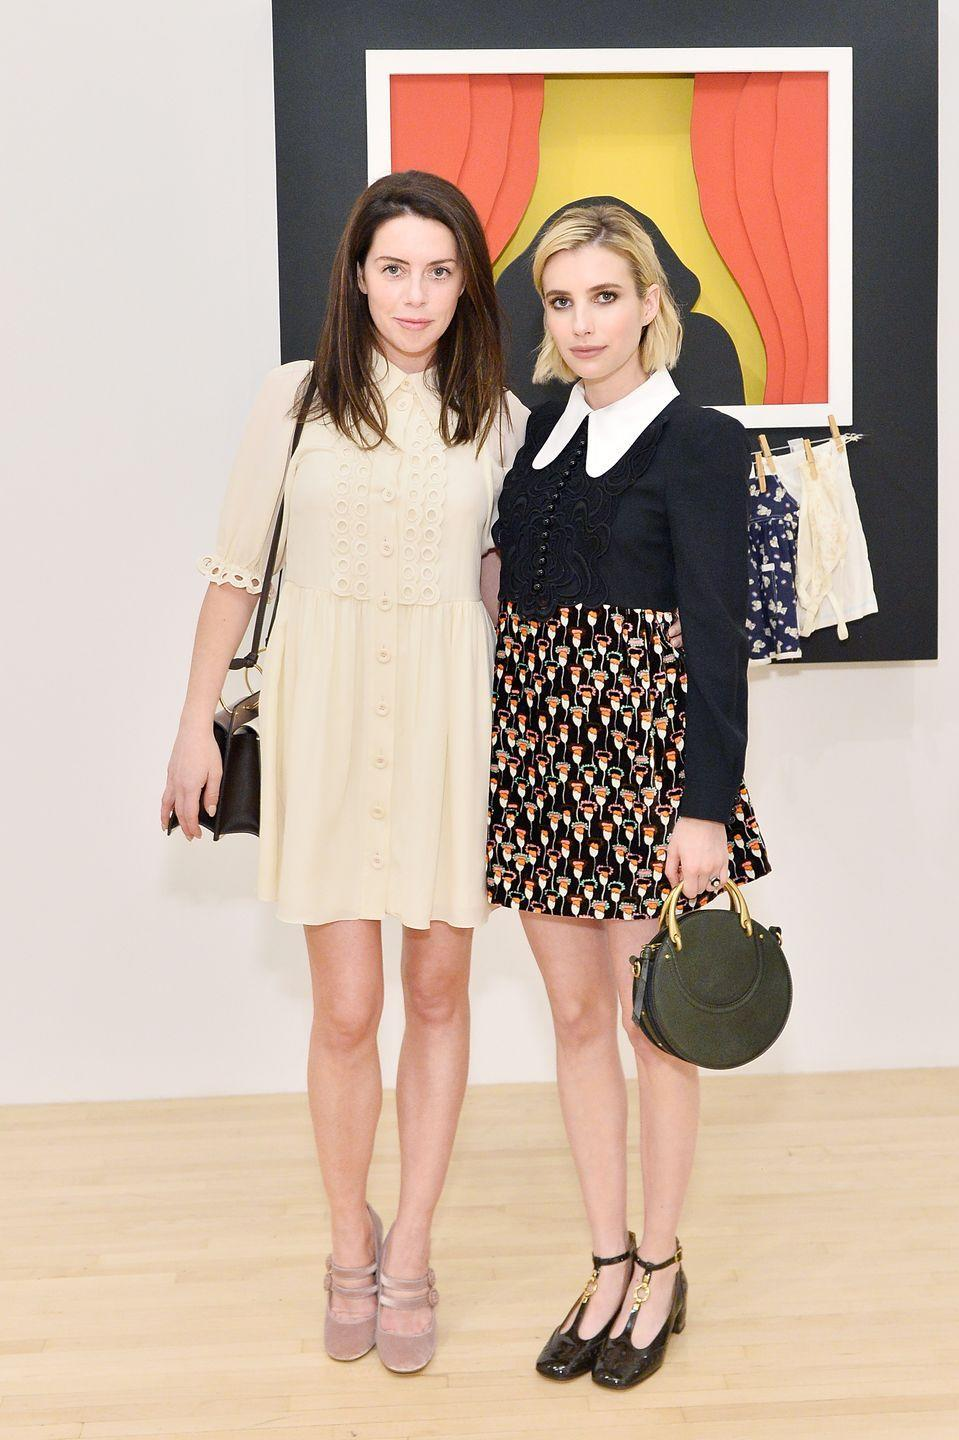 """<p><a href=""""https://www.eonline.com/news/863408/the-fabulous-life-of-non-famous-celebrity-bffs-the-perks-and-privileges-of-hanging-with-a-listers"""" rel=""""nofollow noopener"""" target=""""_blank"""" data-ylk=""""slk:E! News"""" class=""""link rapid-noclick-resp"""">E! News</a> previously reported on the friendship between Emma Roberts and Brit Elkin. According to the outlet, this pair became friends after Roberts shared a photo of an item from Brit's clothing line on social media. From there, Brit and her sister Kara Smith became close friends and stylists to Emma. """"Happy Birthday to my sister, best friend, wife, stylist, & everything <a href=""""https://www.instagram.com/britelkin/"""" rel=""""nofollow noopener"""" target=""""_blank"""" data-ylk=""""slk:@britelkin"""" class=""""link rapid-noclick-resp"""">@britelkin</a> 💝 I love you to the 🌝 and back always & forever! See you so soon sis!!!"""" Roberts wrote <a href=""""https://www.instagram.com/p/B5tJvm_gMWi/"""" rel=""""nofollow noopener"""" target=""""_blank"""" data-ylk=""""slk:on Instagram"""" class=""""link rapid-noclick-resp"""">on Instagram</a> last December.<br></p>"""